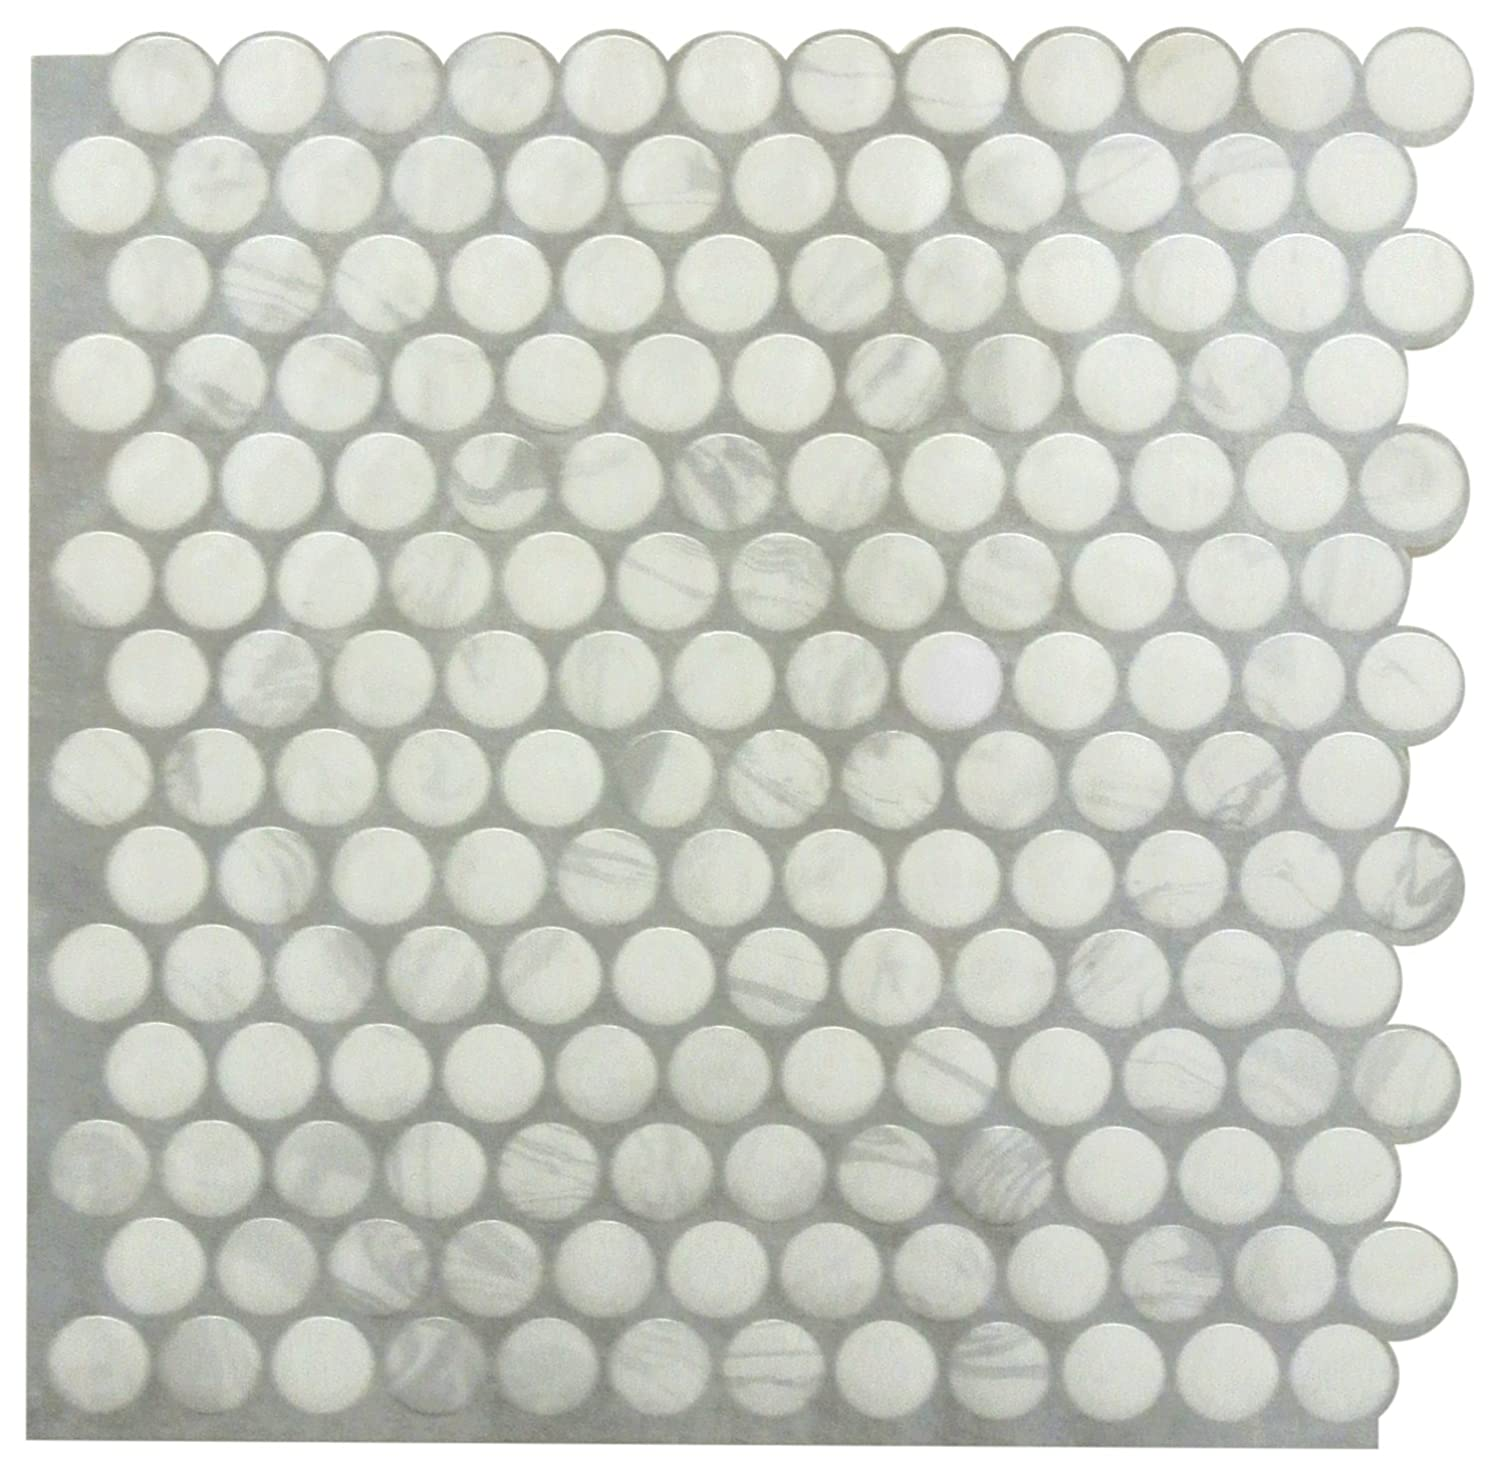 4 Pack 10.5x10.5 white RoomMates TIL3463FLT Classic Marble Penny StickTILES